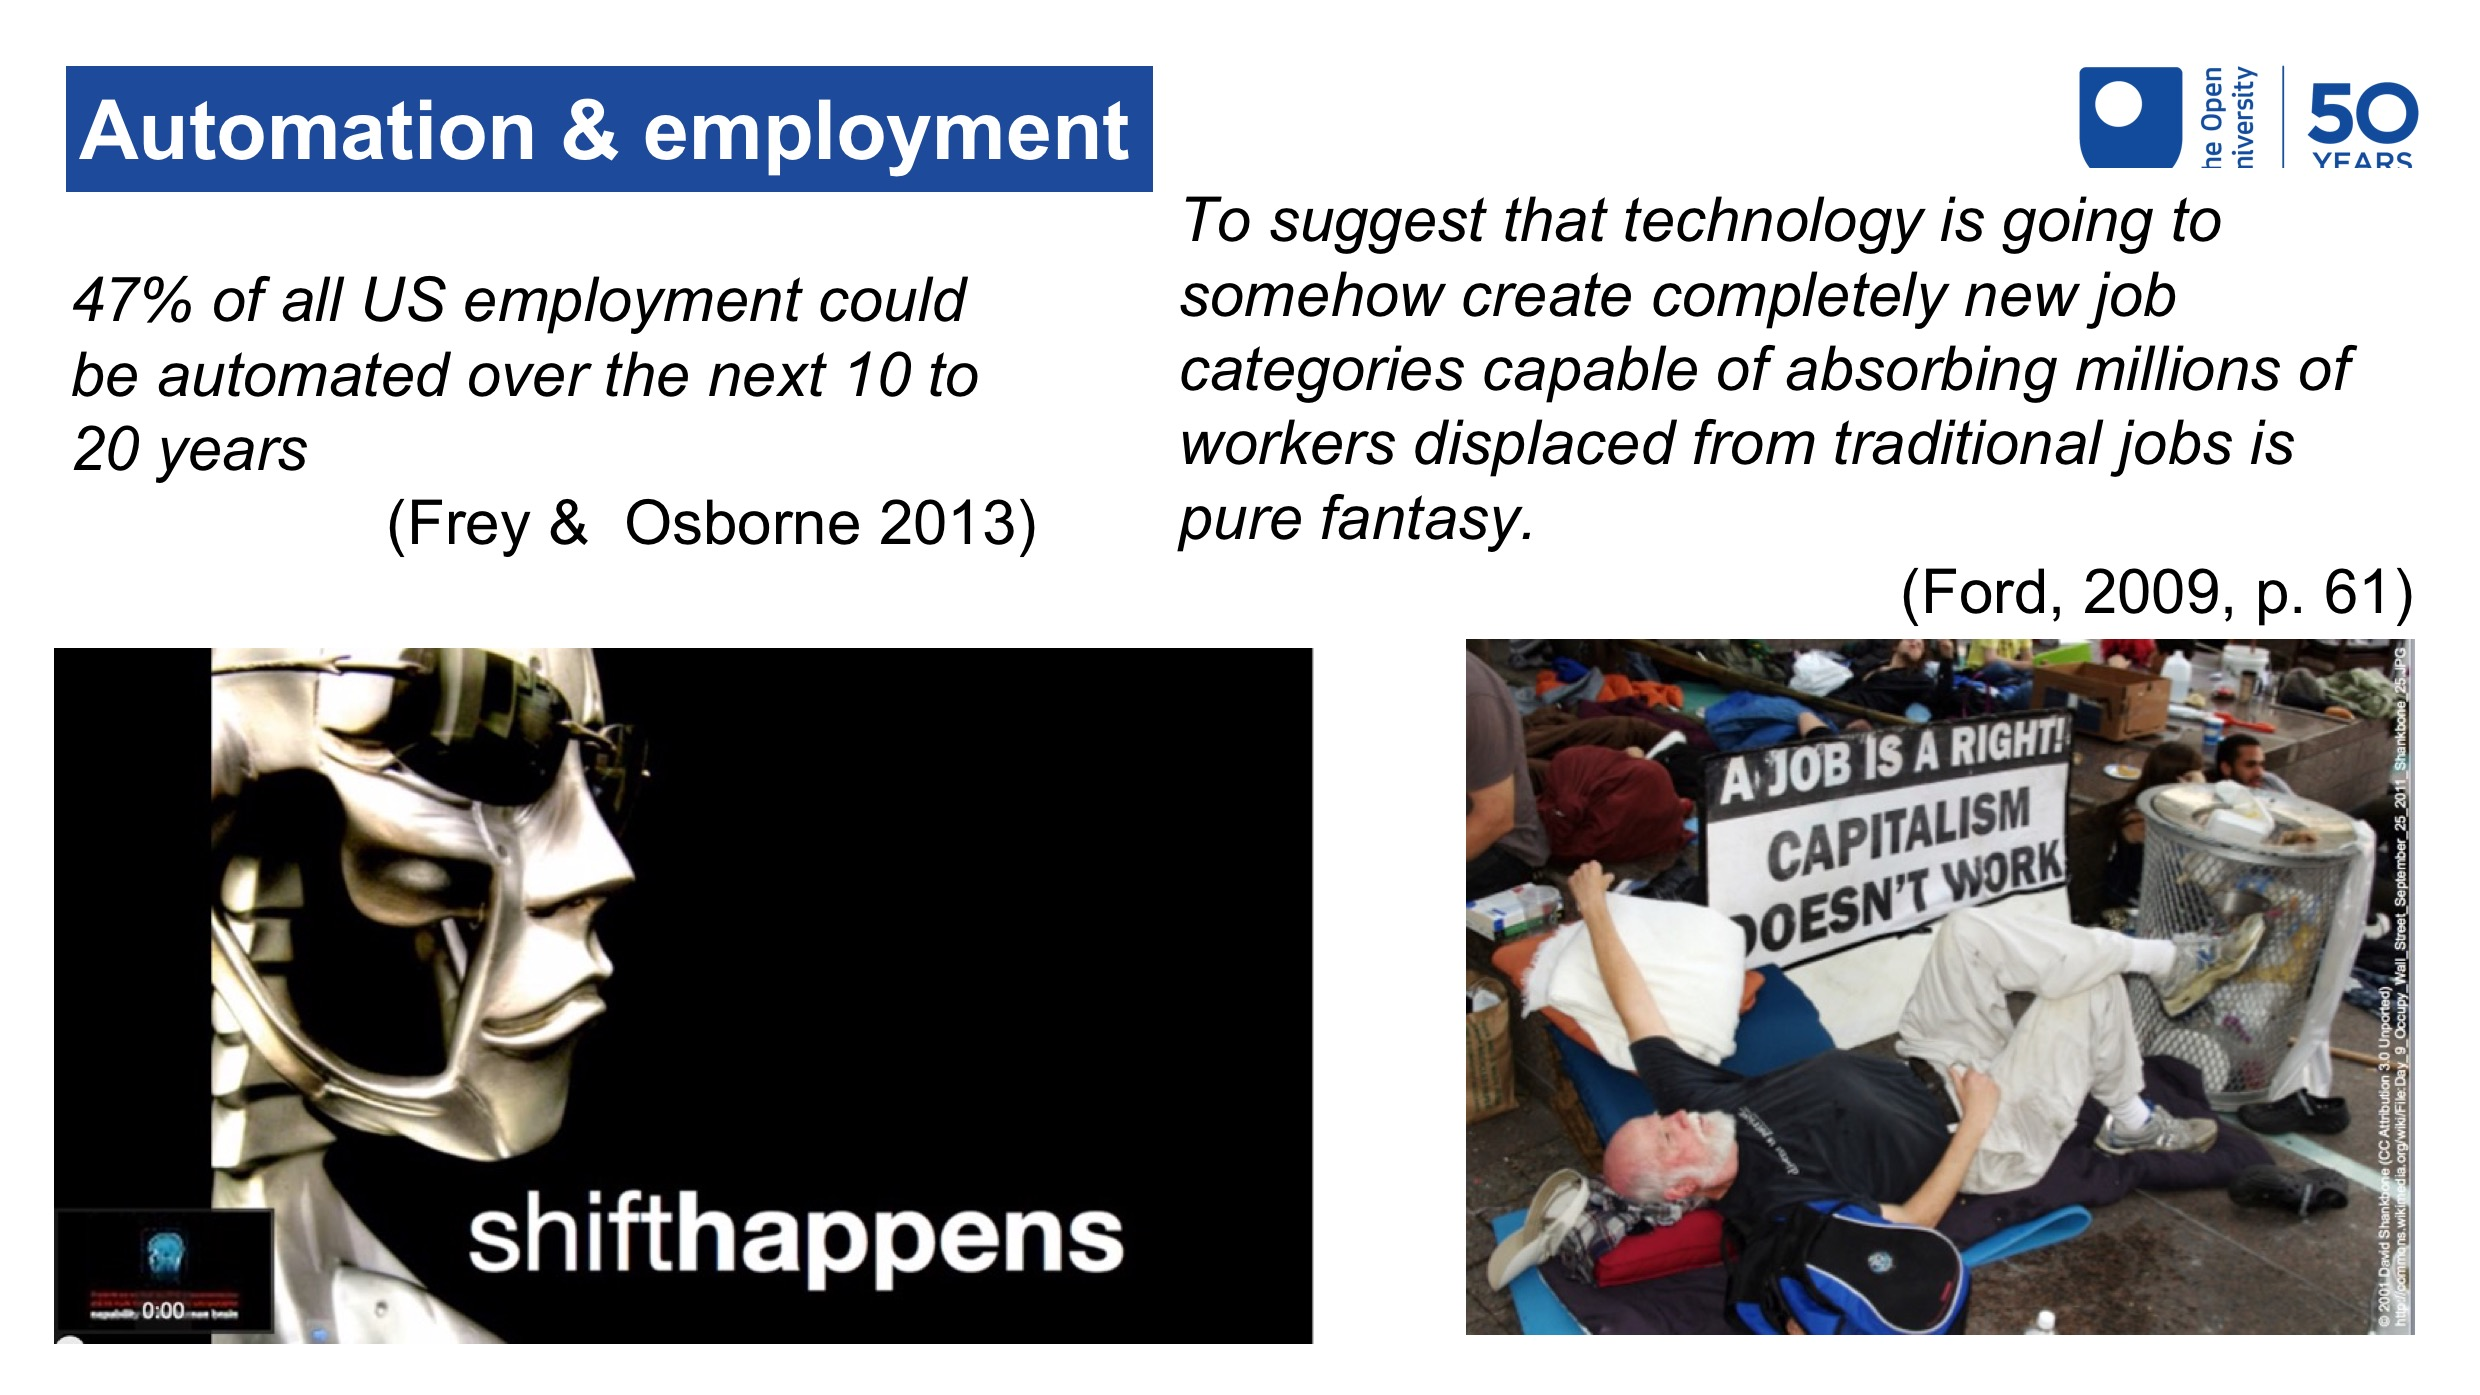 Images and quotes representing different views of the impact of automation on employment